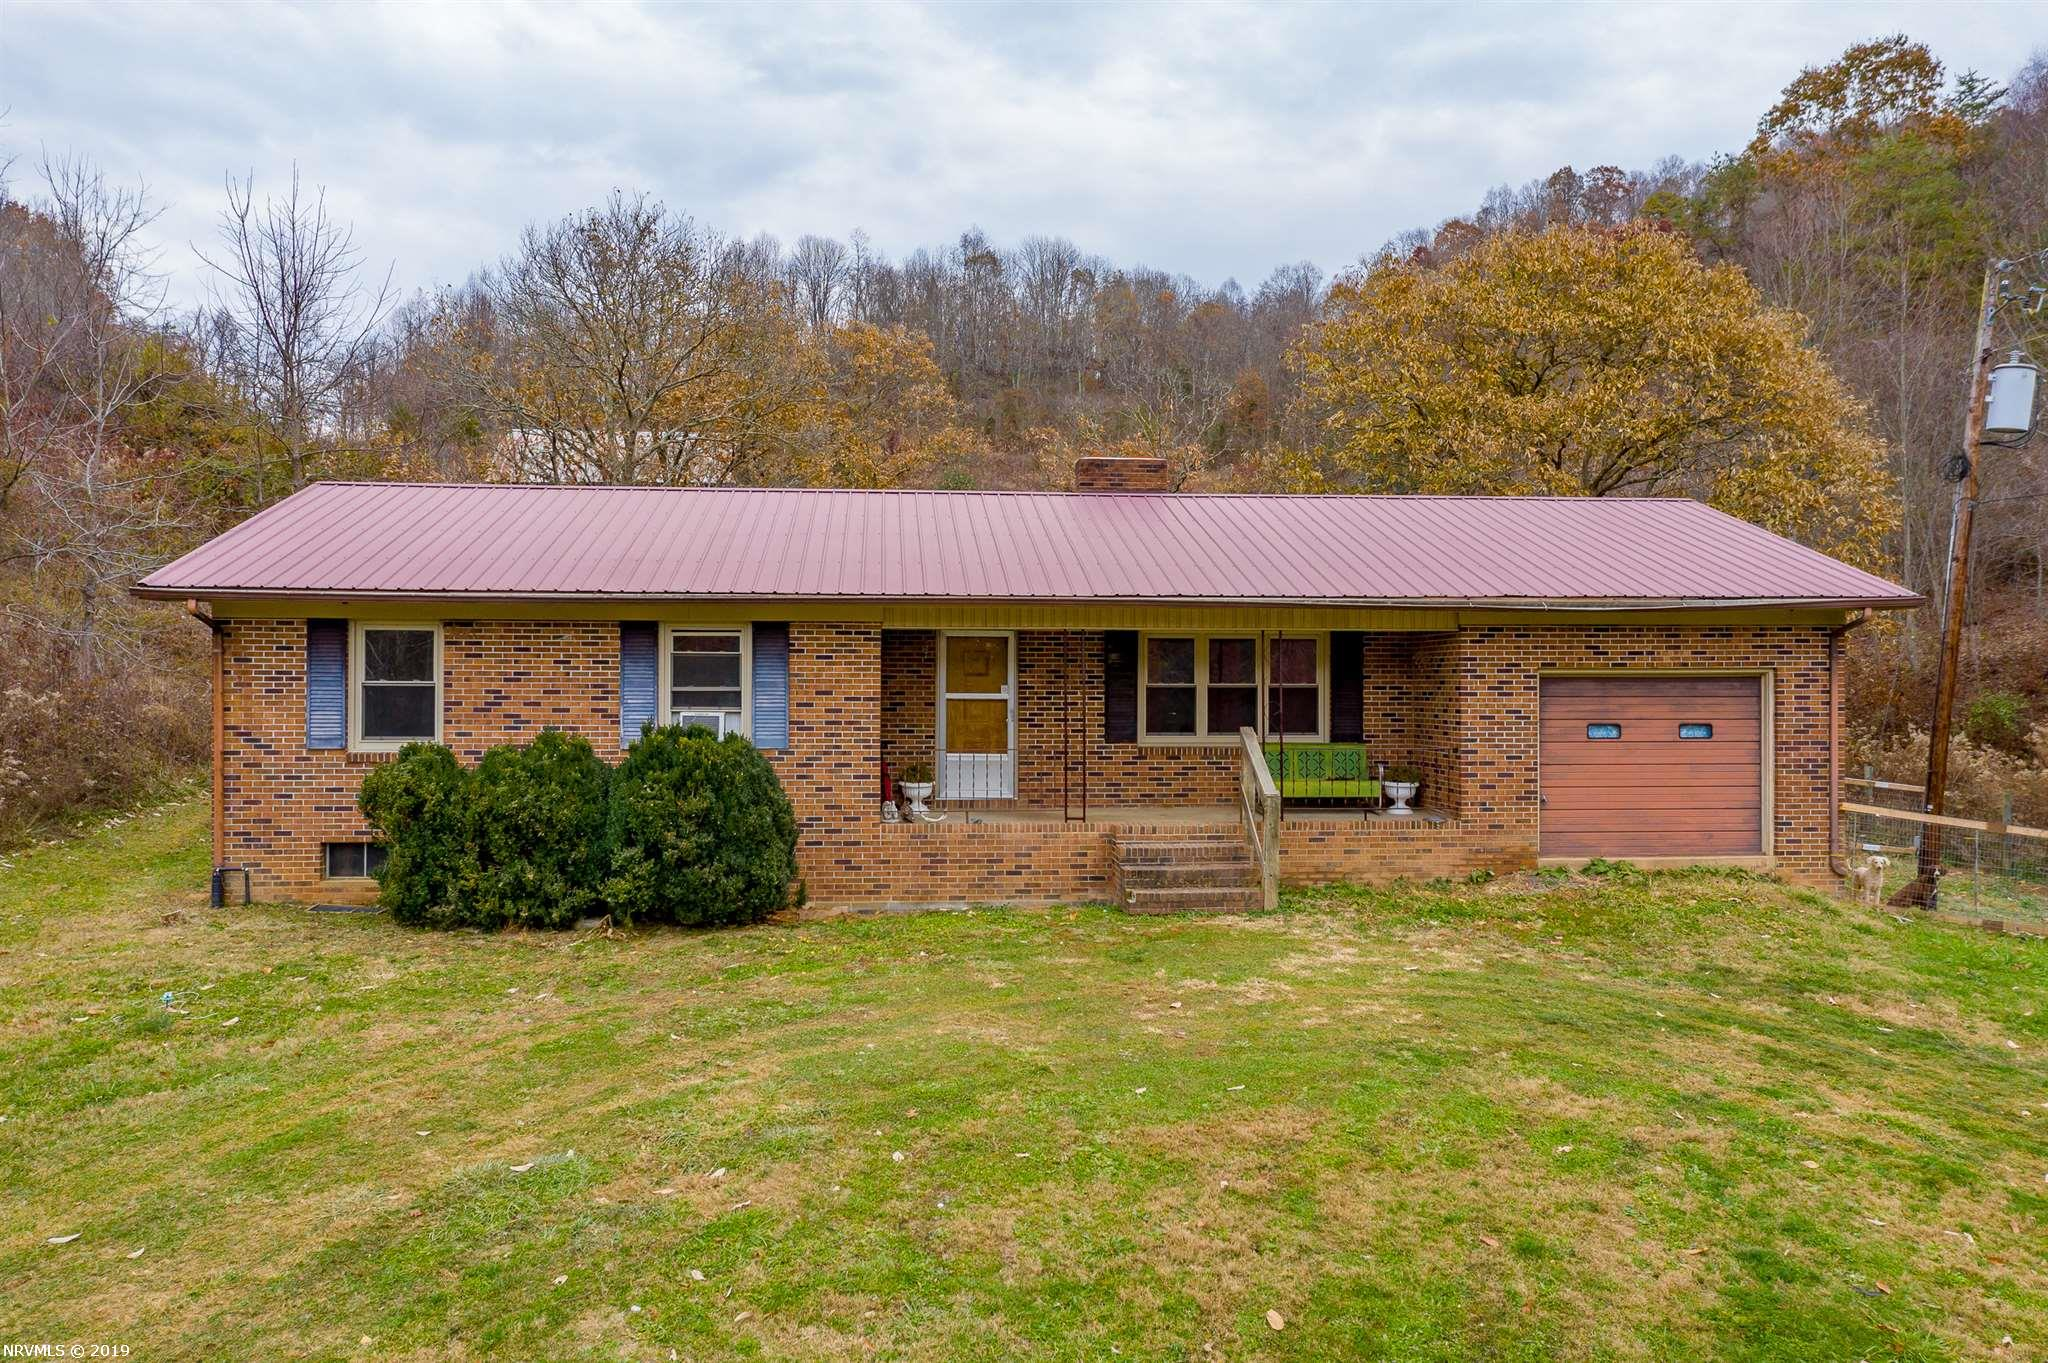 This remarkable property is ready to be both a home and an outdoor playground! This 3 bed 2 bath home sits off the road on secluded 112.74 acres. A classic brick home includes a fireplace, full basement, and a finished garage. Multiple outbuildings are perfect for your workshop or ATVs and other outdoor toys. Large trees and trails running through the property provide a beautiful, quiet place to ride, hike, and explore. Don't miss out on everything this home has to offer. Schedule a showing today!